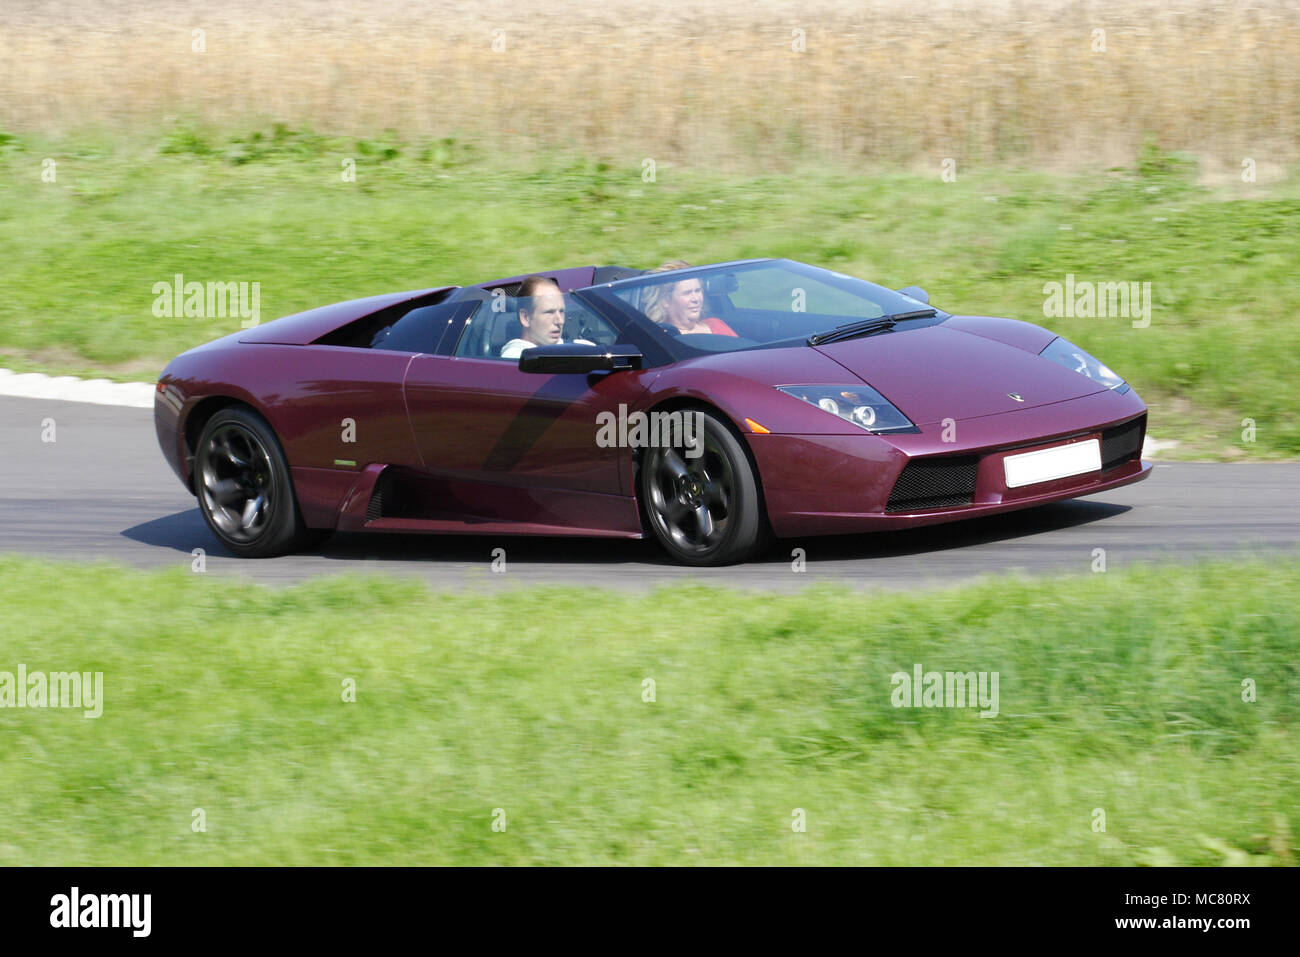 Purple Lamborghini Murcielago Roadster Open Top Or Convertible